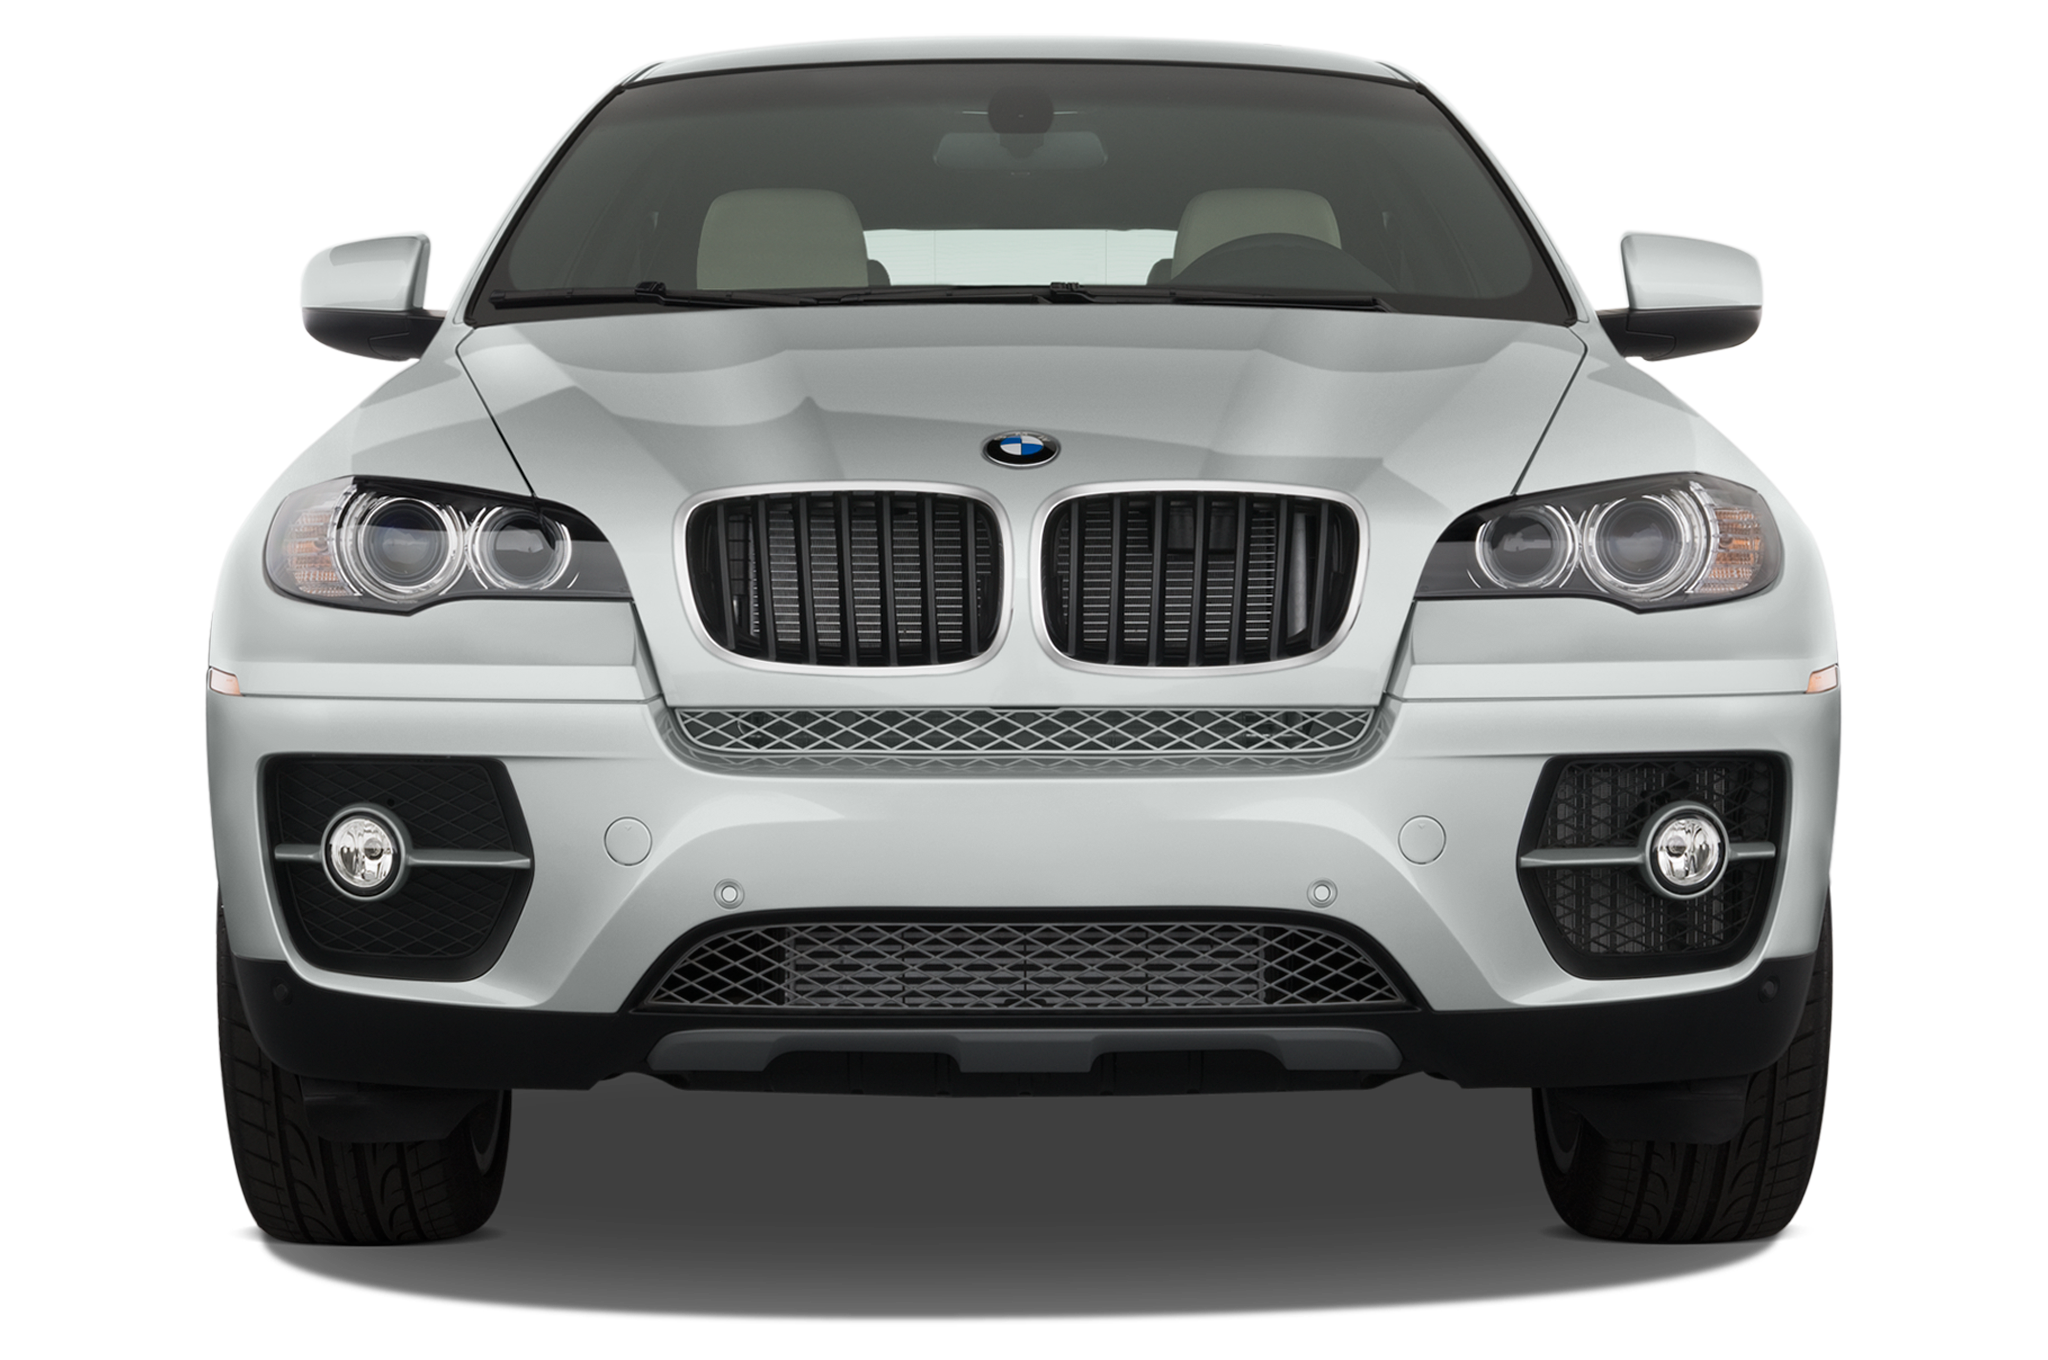 BMW X6 M I (E71) 2009 - 2012 SUV 5 door #5